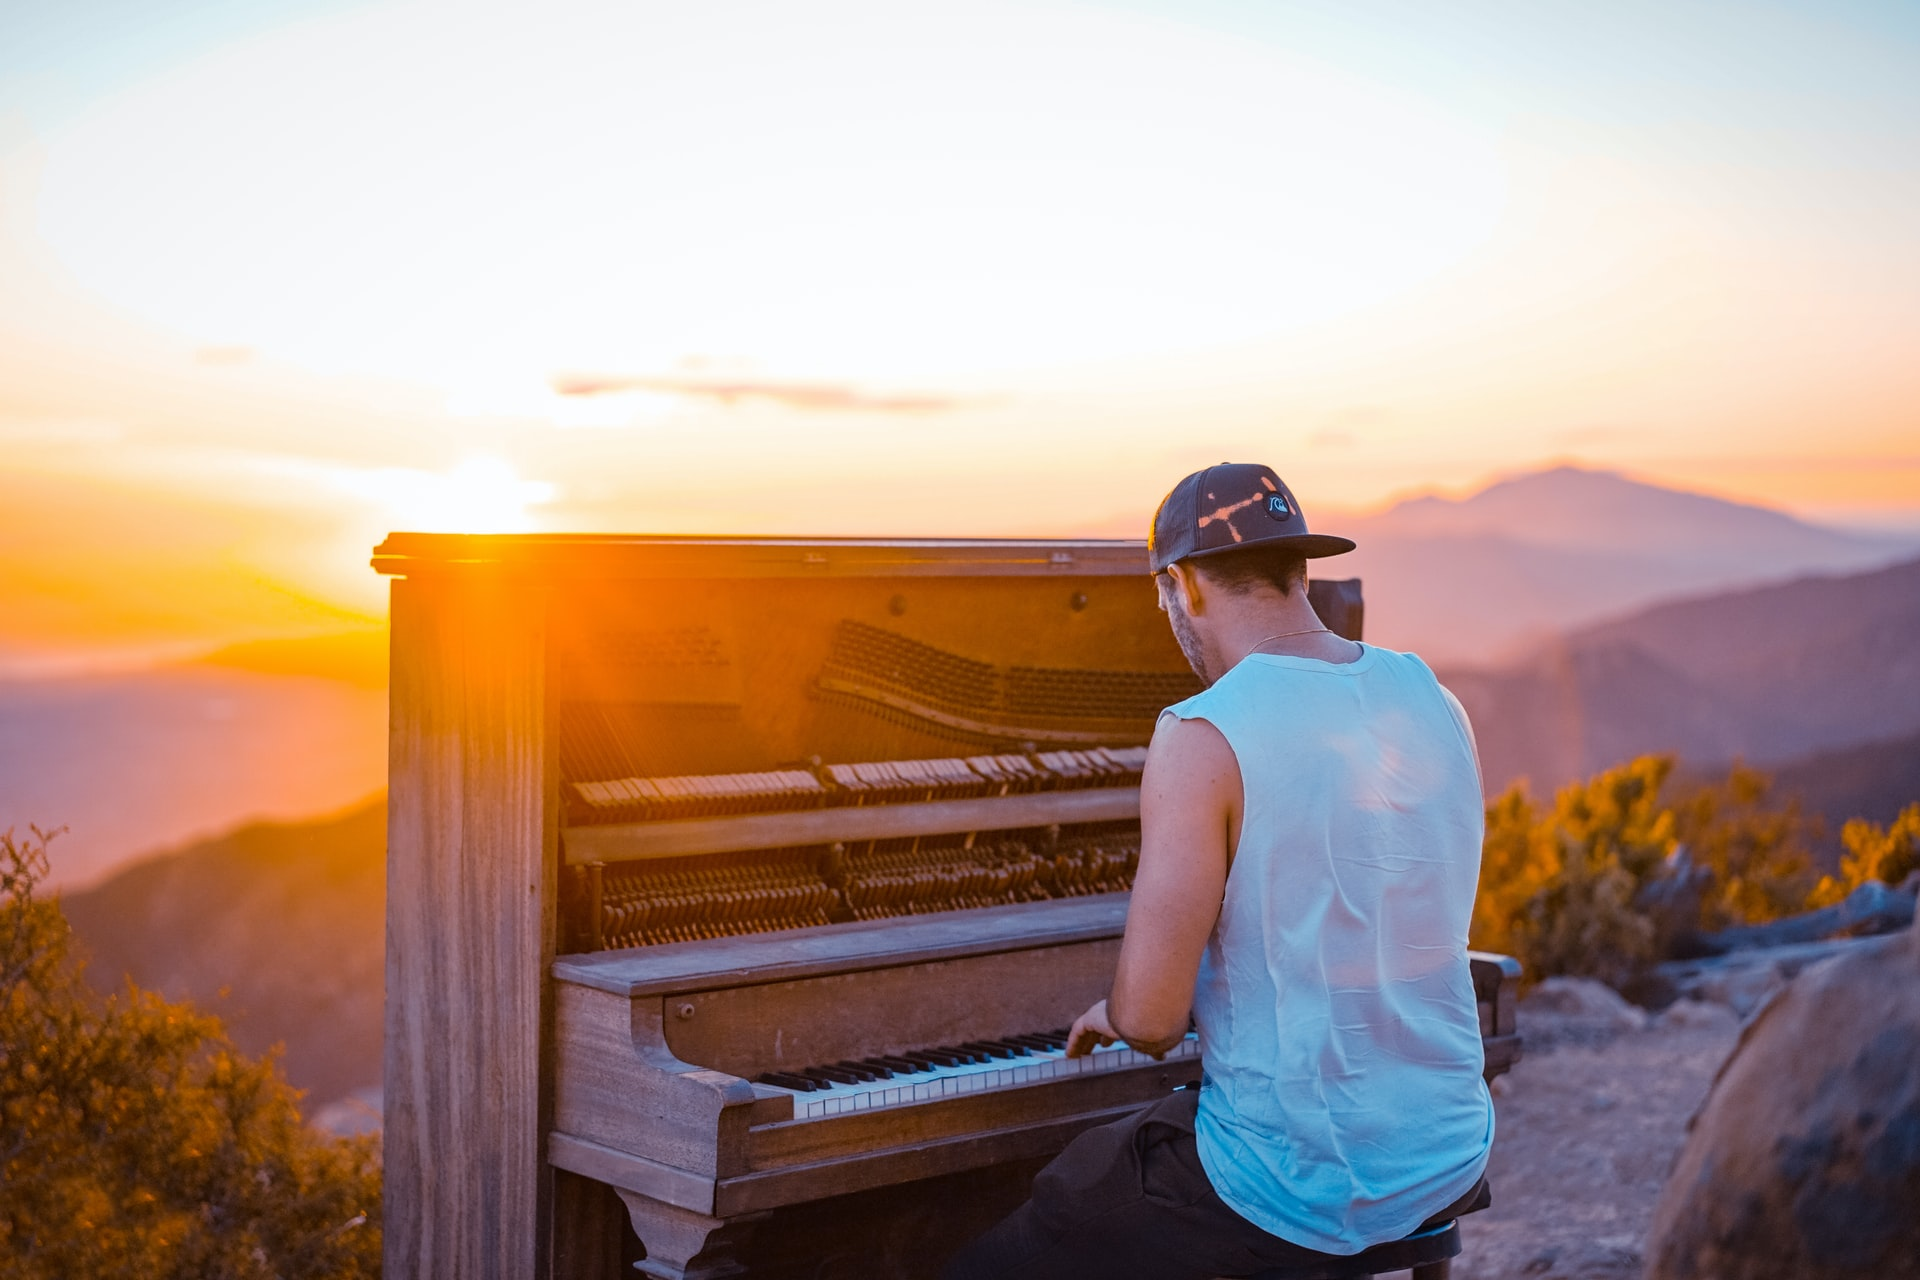 Buying a Piano for the First Time